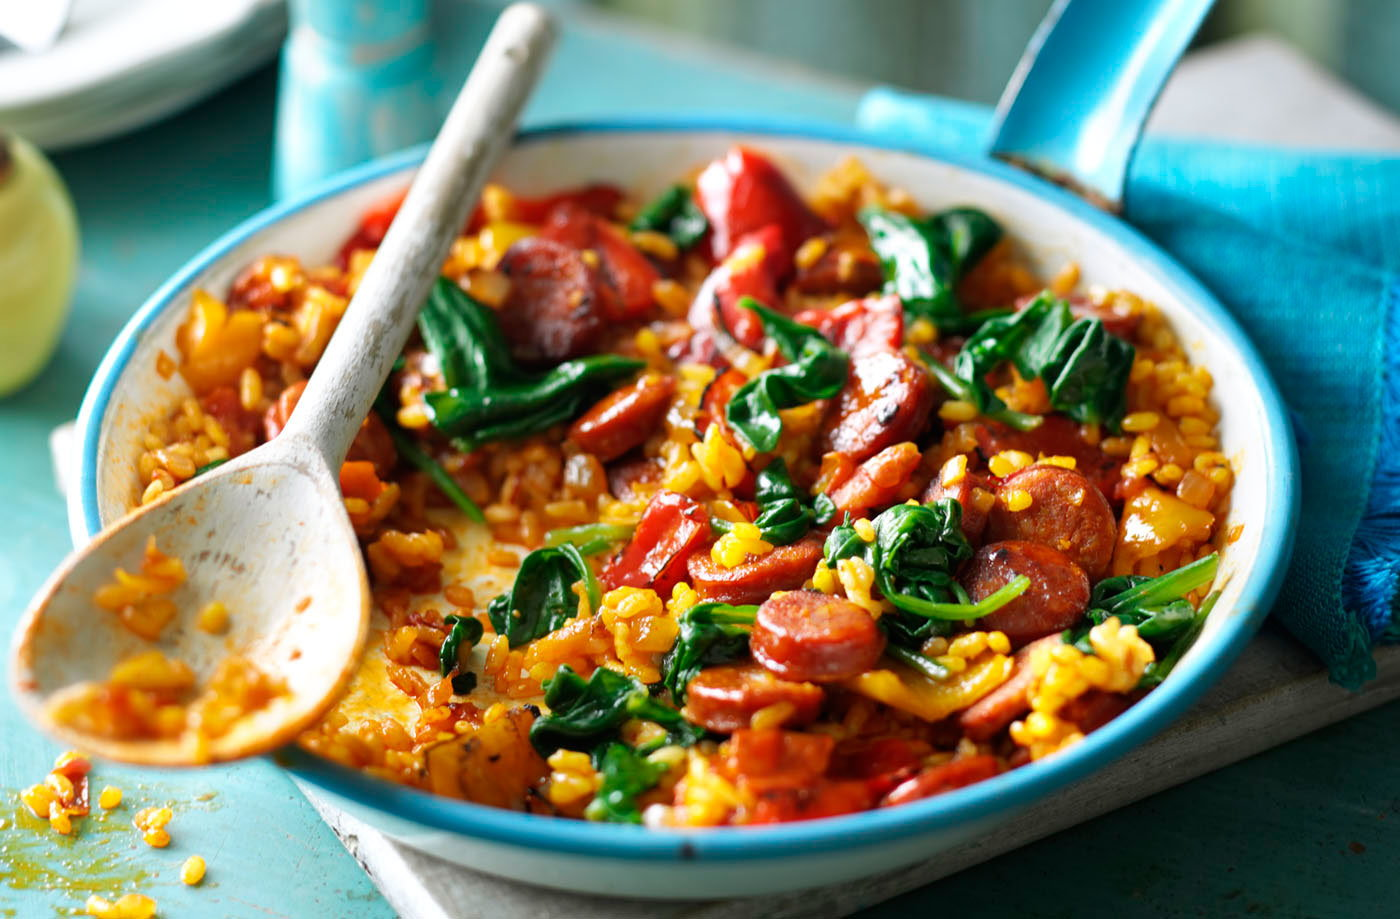 Chorizo and spinach paella recipe